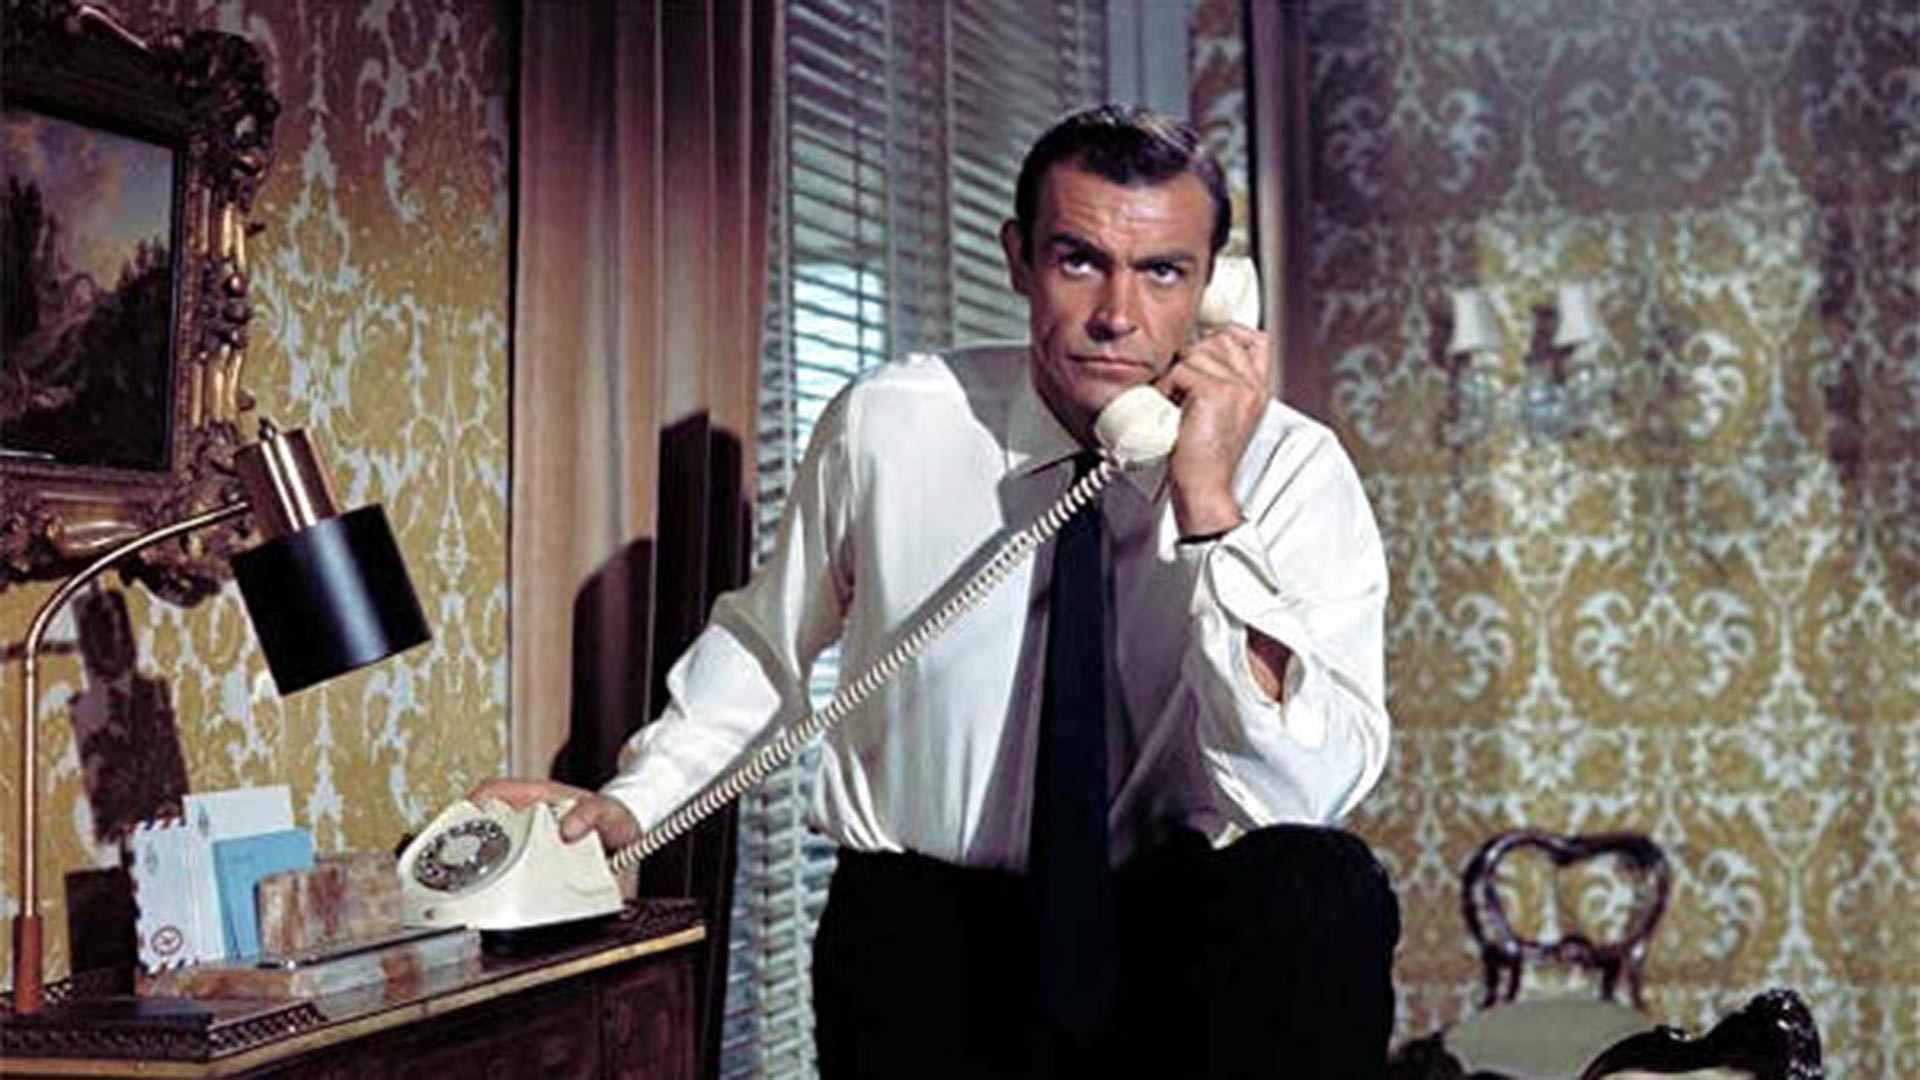 'From Russia With Love' was reportedly Connery's own personal favorite.